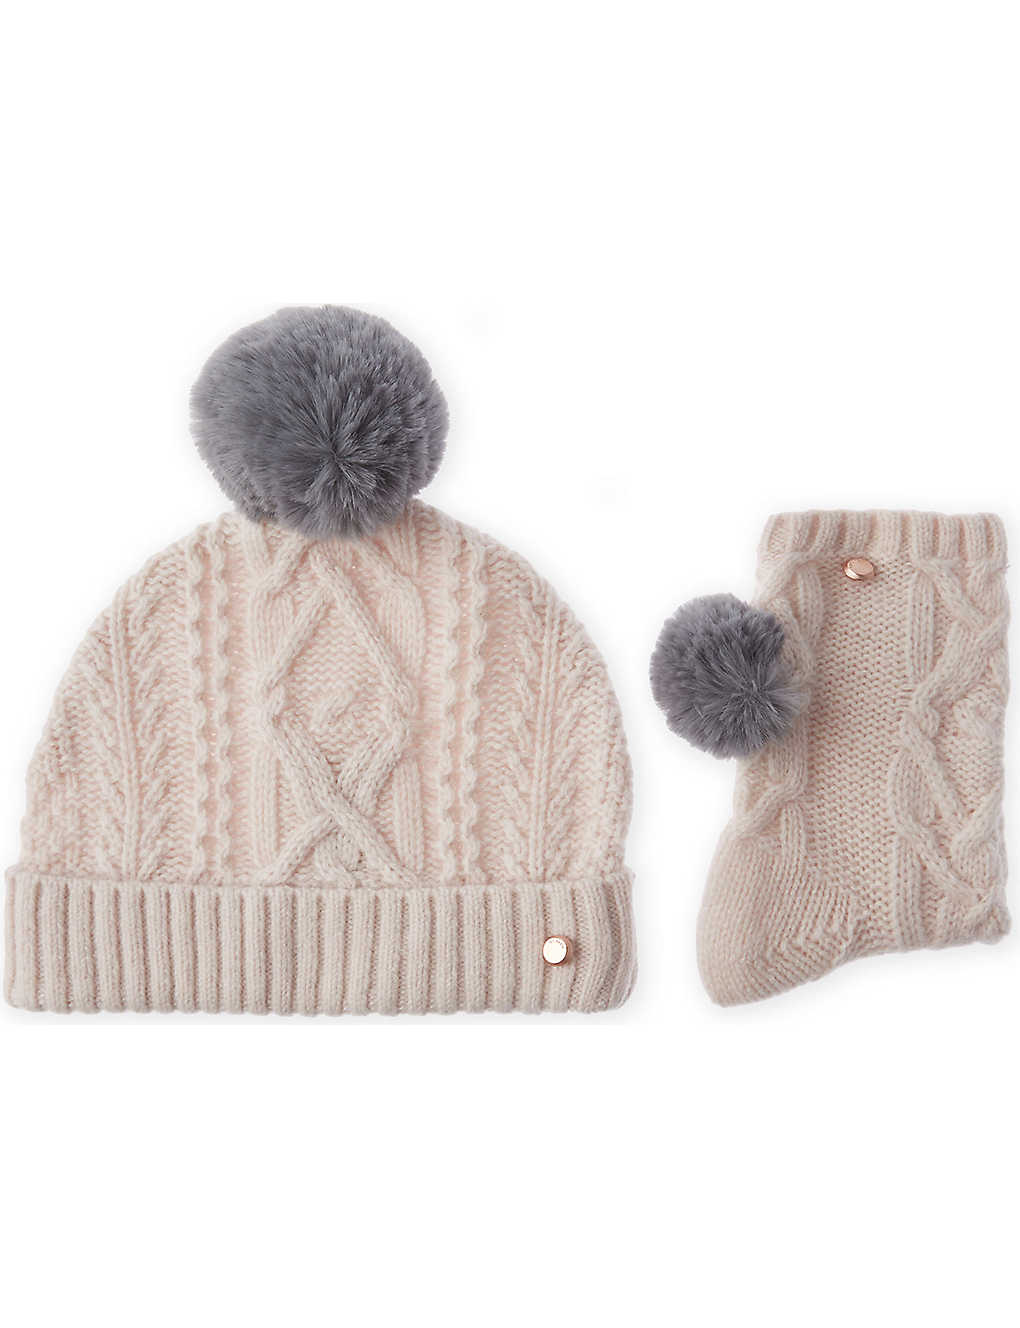 313b532692de8 TED BAKER - Raisa knitted bobble hat and sock set